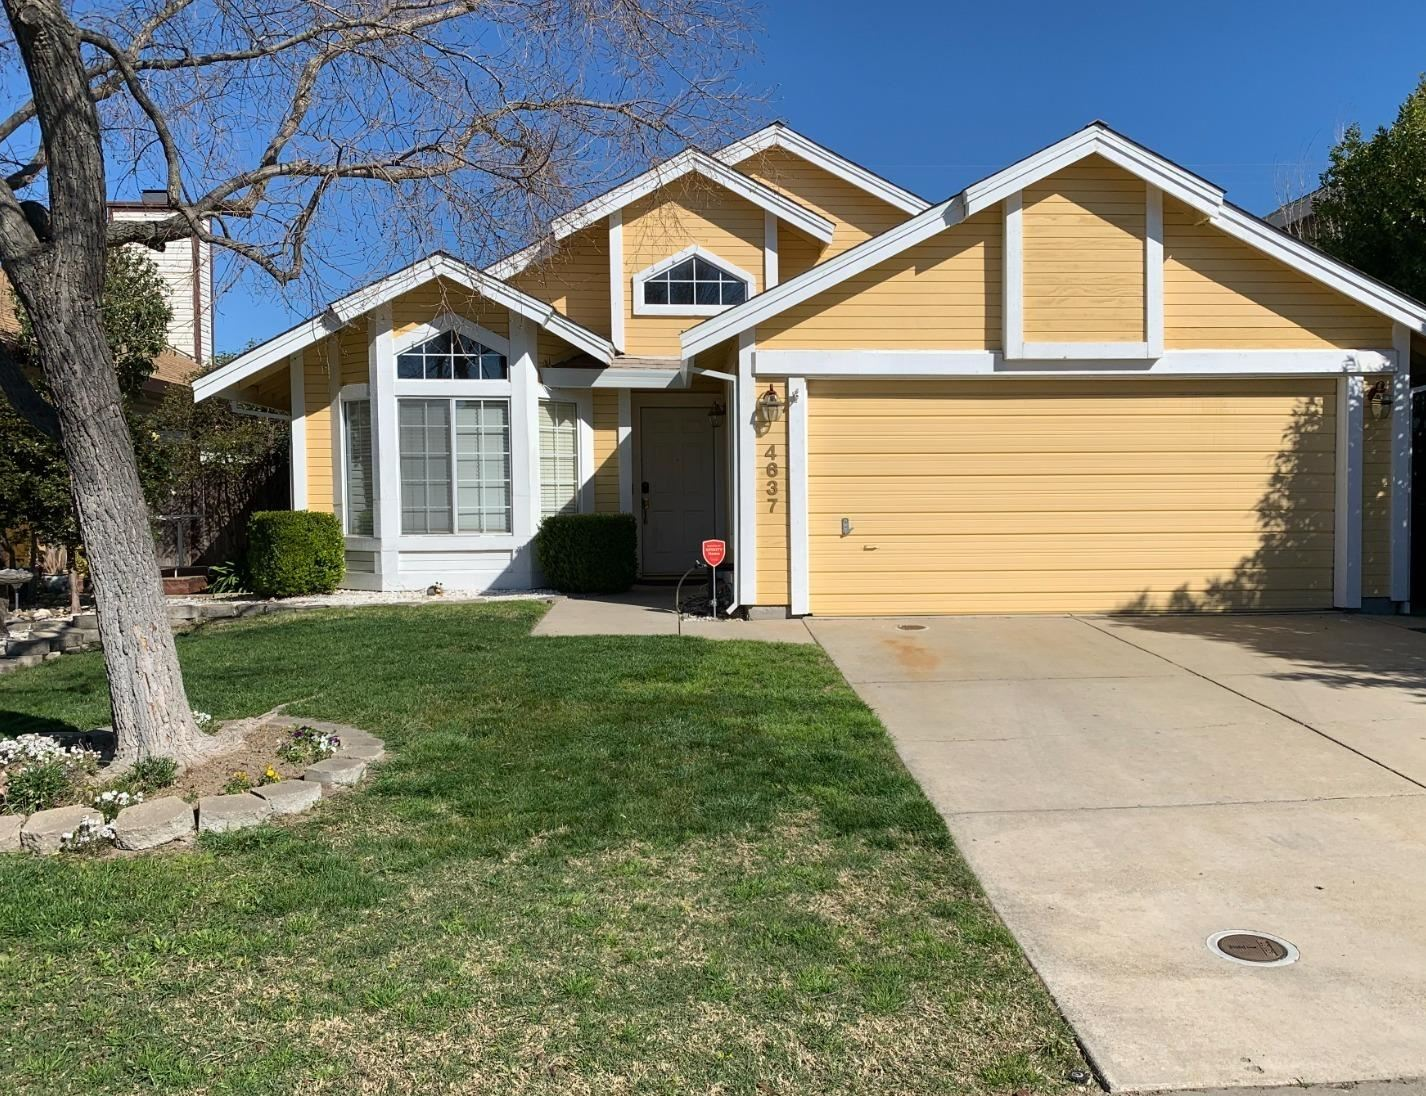 Photo of 4637 Winter Oak Way, Antelope, CA 95843 (MLS # 221011919)